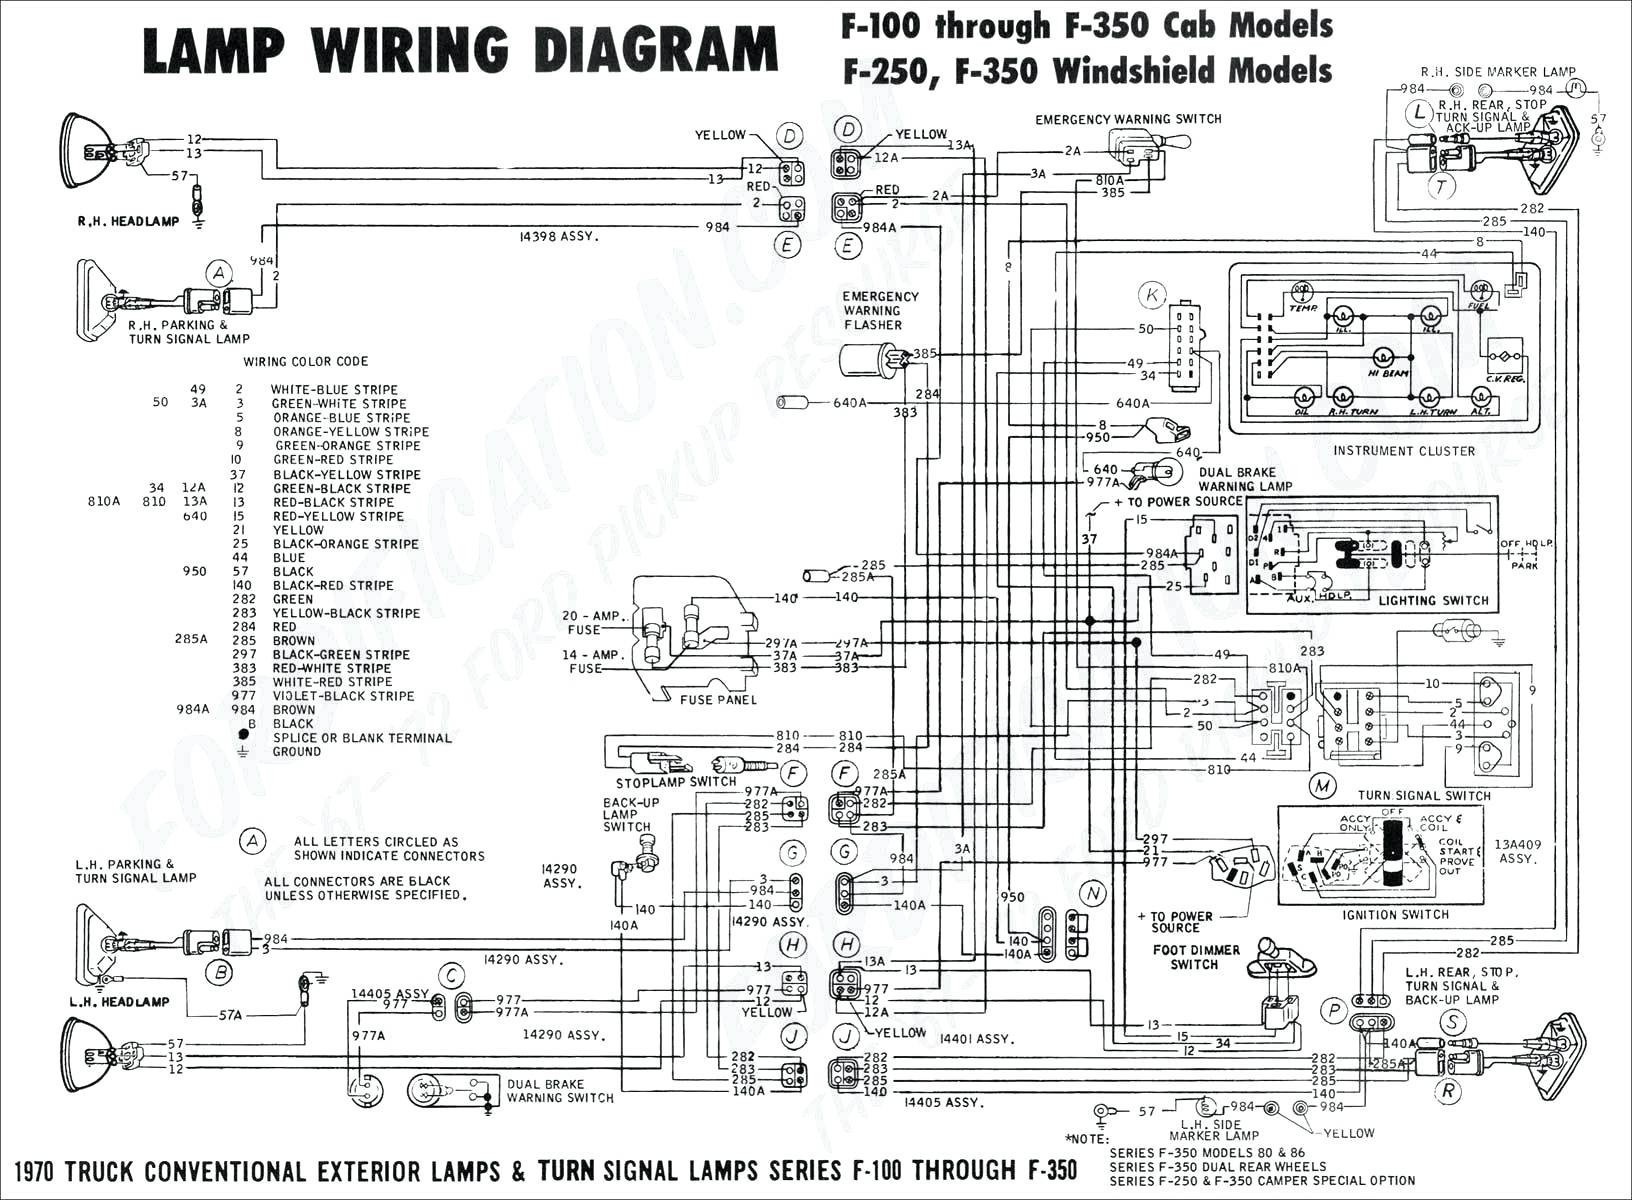 1999 Ford Ranger Stereo Wiring Diagram from static-cdn.imageservice.cloud